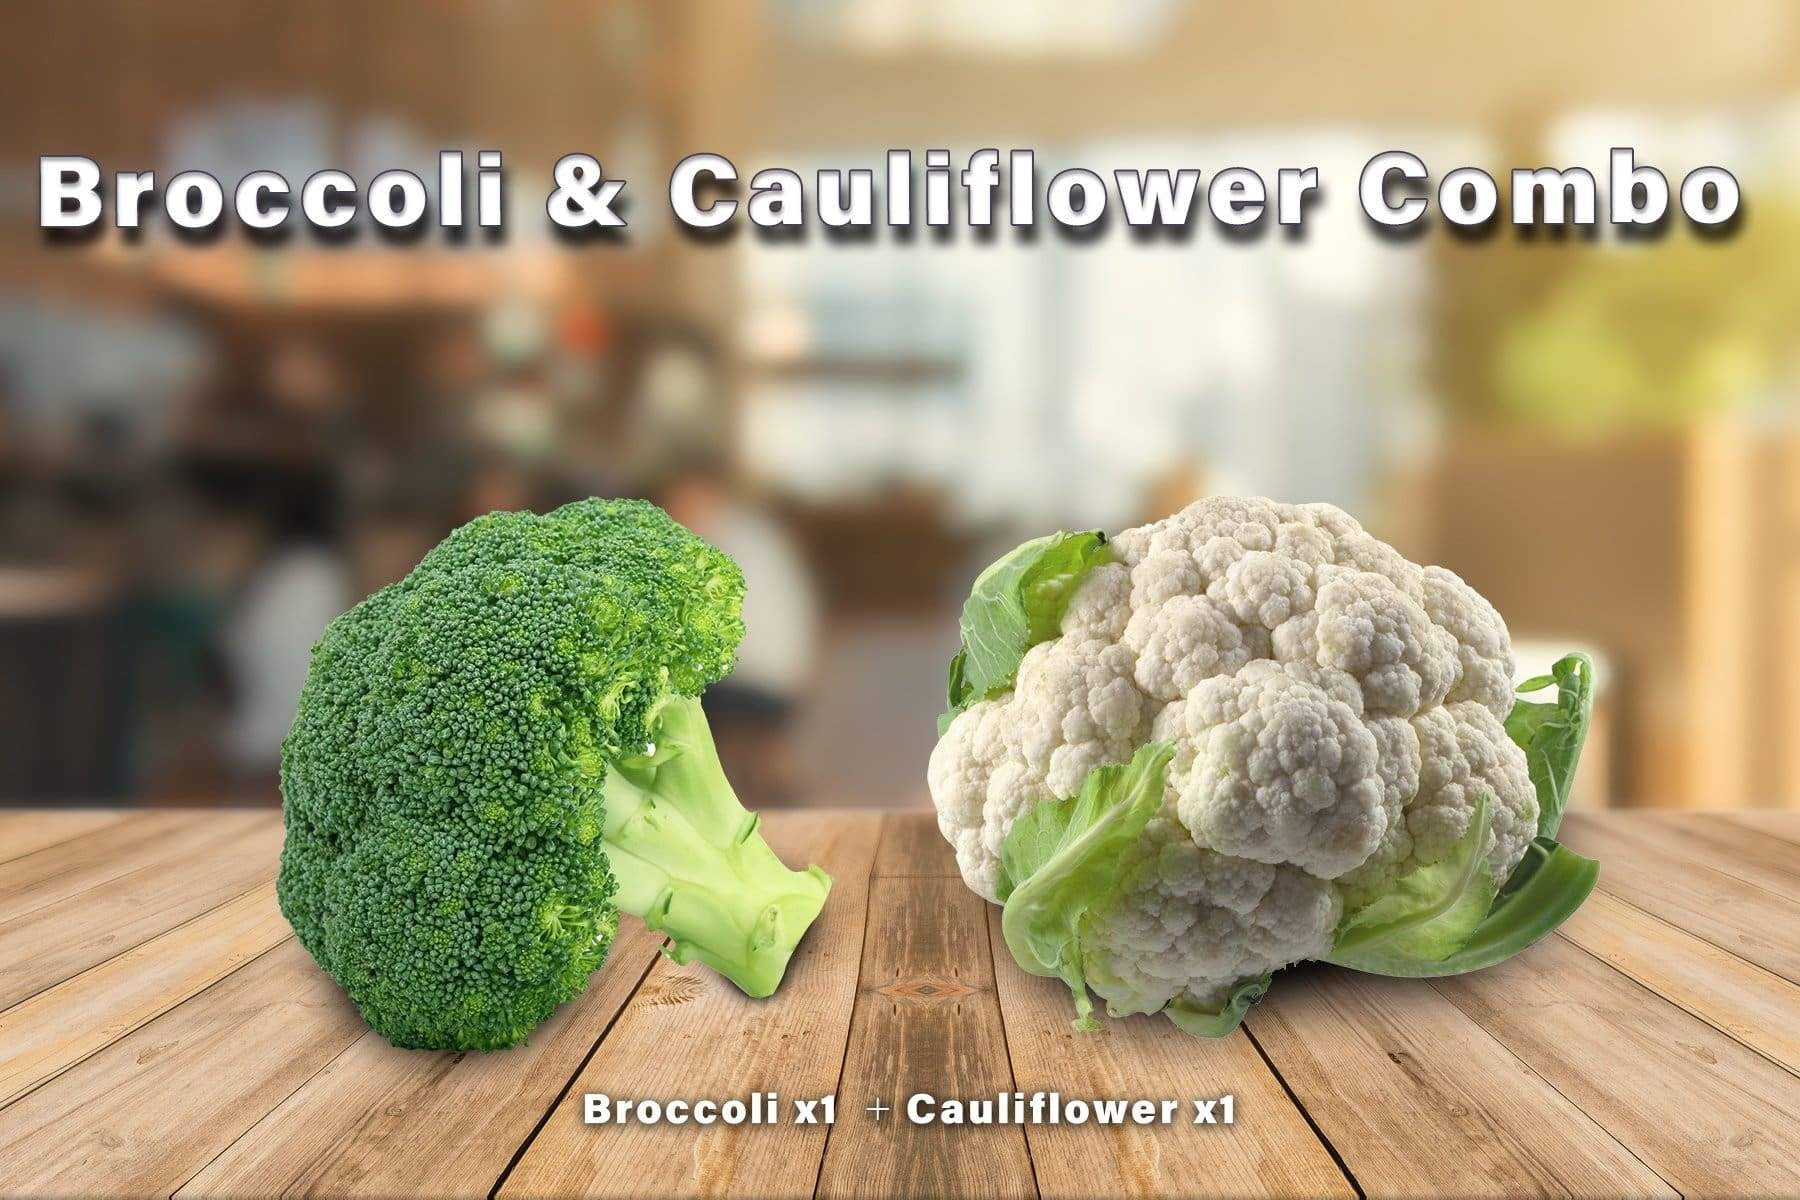 Broccoli & Cauliflower Combo - Bansan Penang